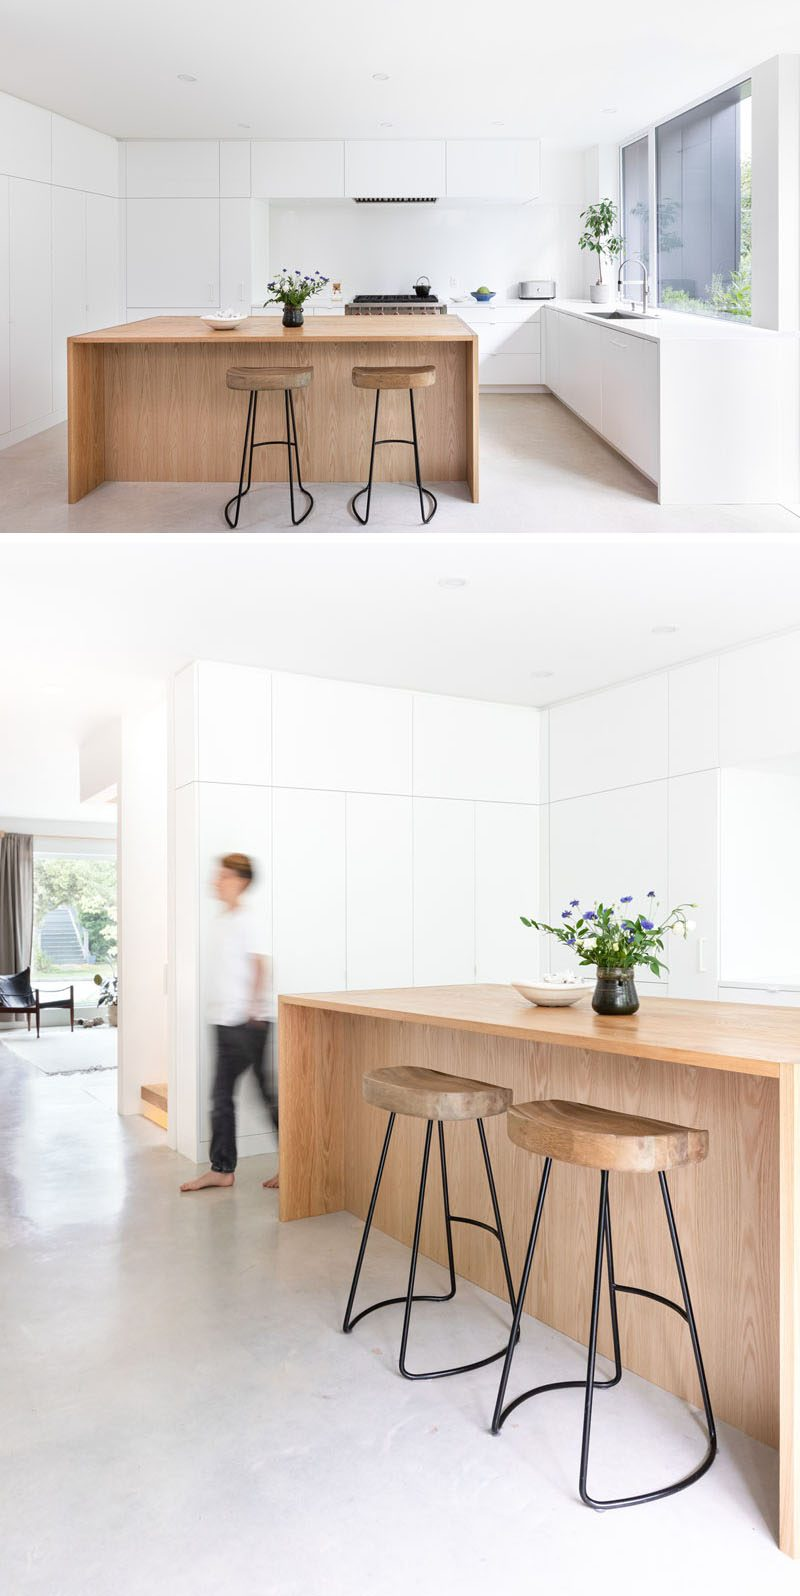 This modern kitchen brings nature inside with the use of a wood island, while white countertops and minimalist hardware free cabinets blend seamlessly into the white walls. #WhiteKitchen #WoodKitchenIsland #ModernKitchen #MinimalistWhiteCabinets